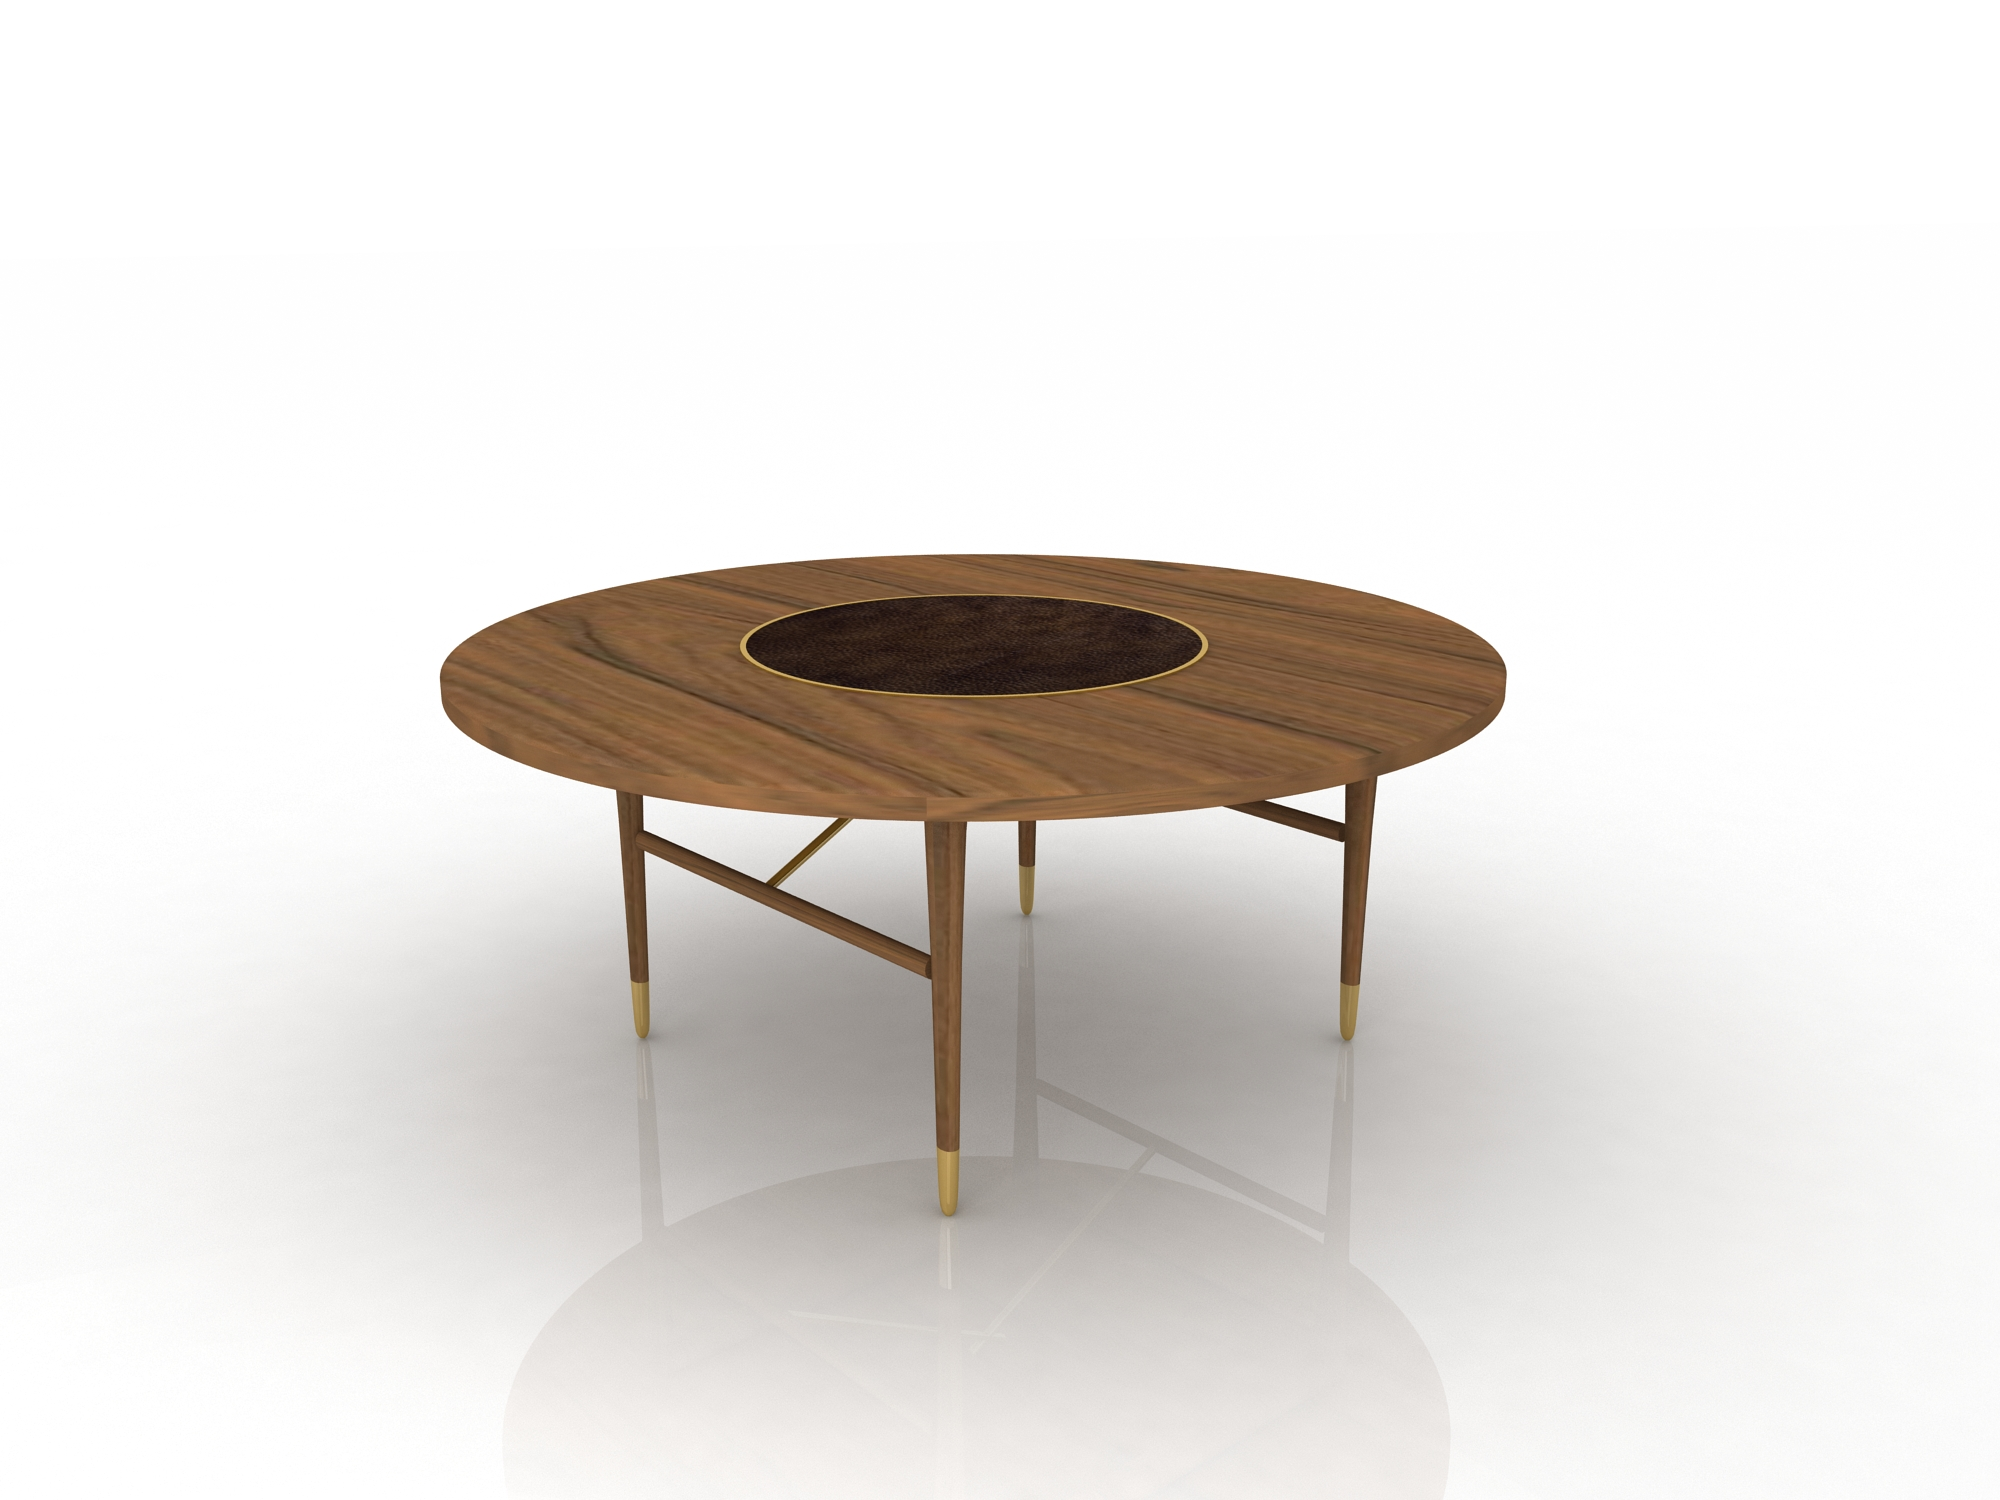 GI-08-COFFEE-TABLE-ROUND-1.jpg